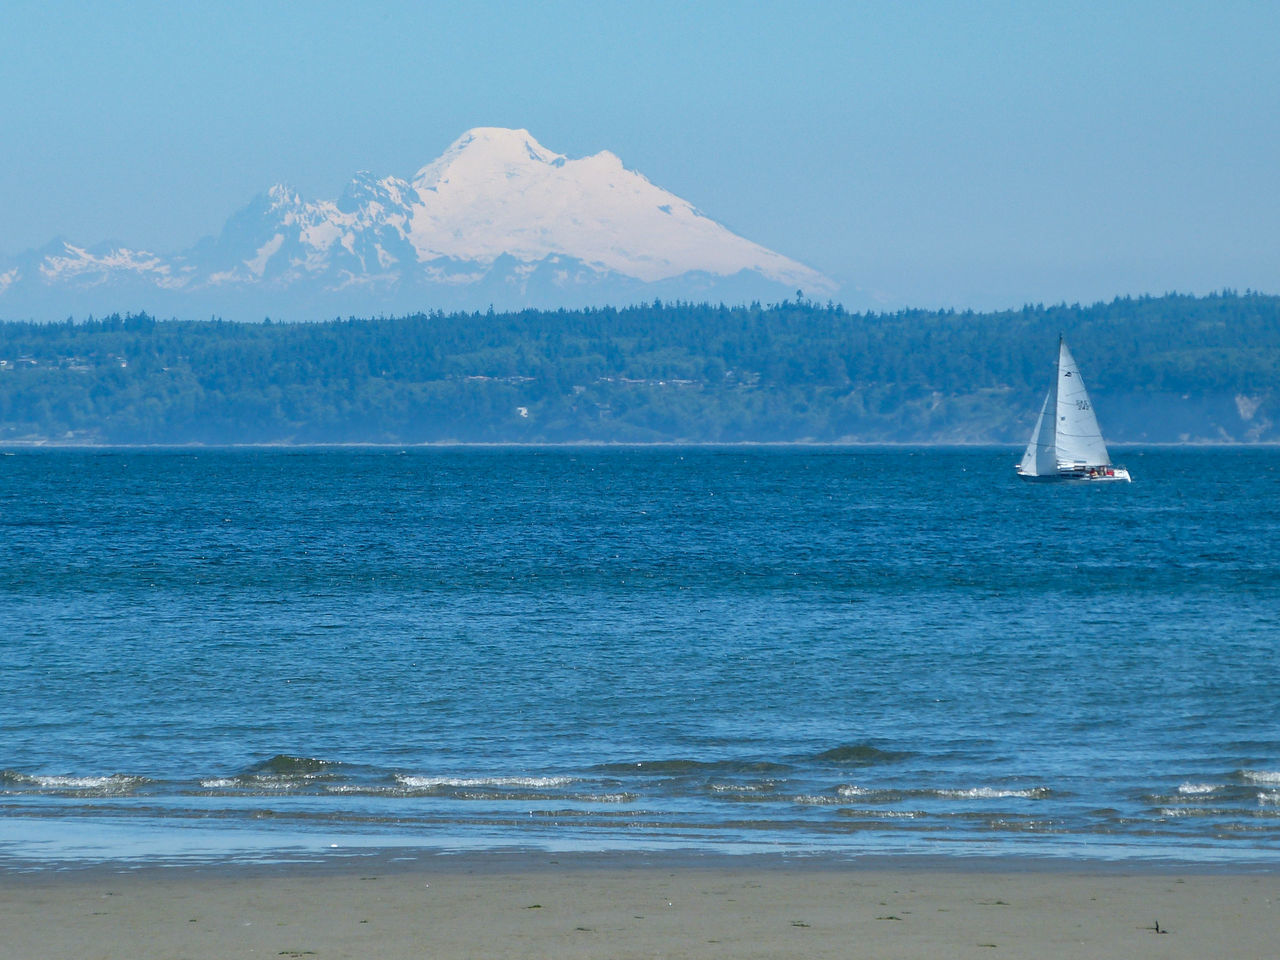 Beauty In Nature Blue Boat Horizon Over Water Idyllic Mountain Mt. Baker Nature Puget Sound Remote Sailboat Sailing Scenics Sea Shore Sky Water